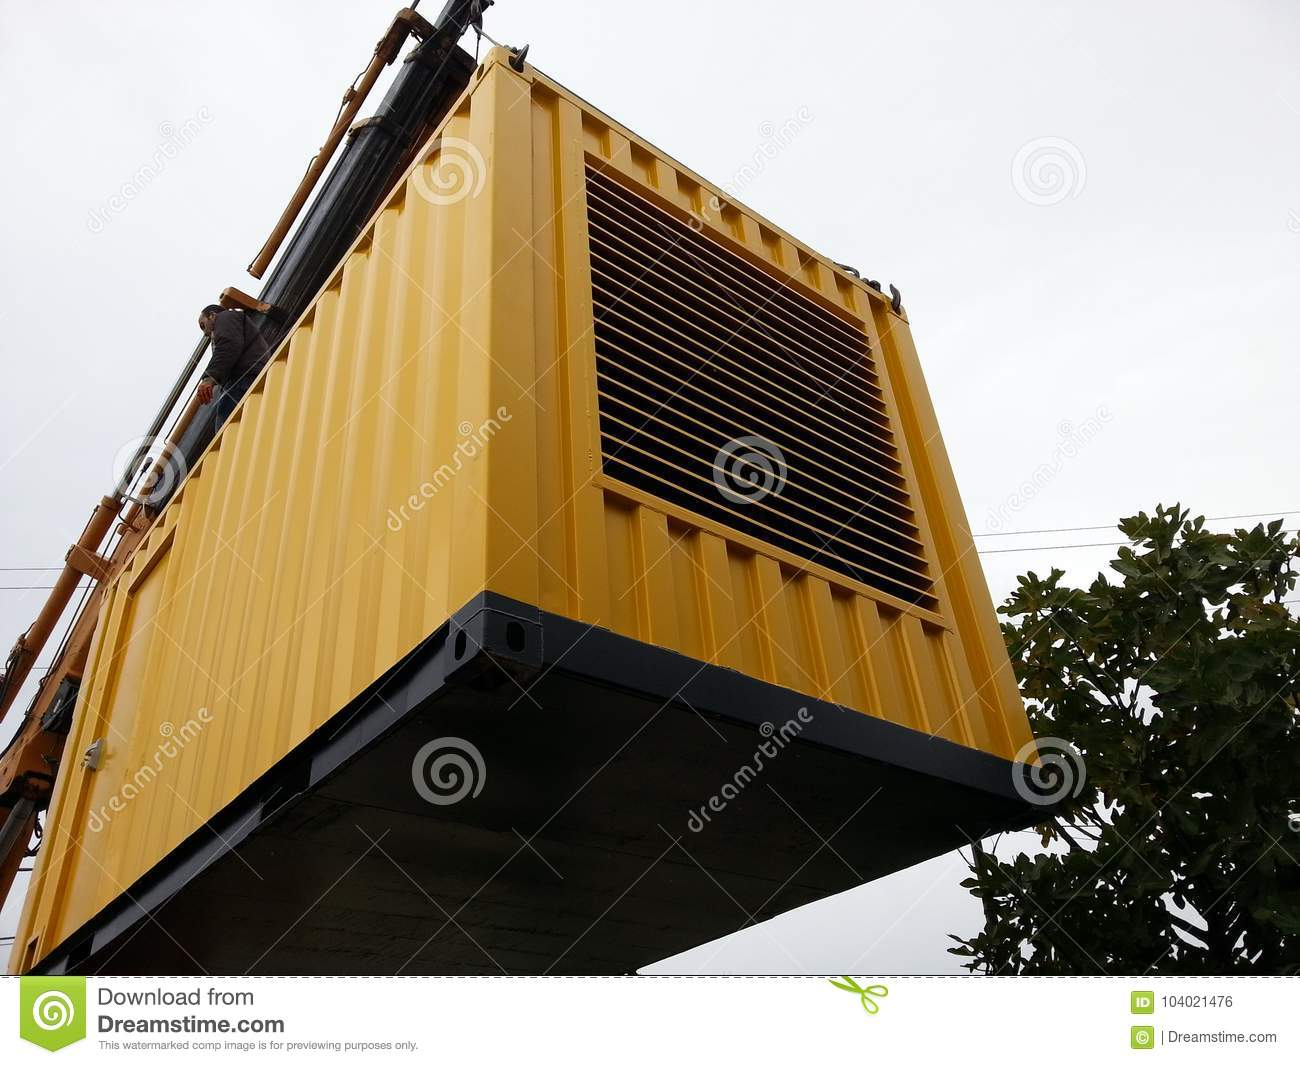 Manufacture of a container for a diesel generator set